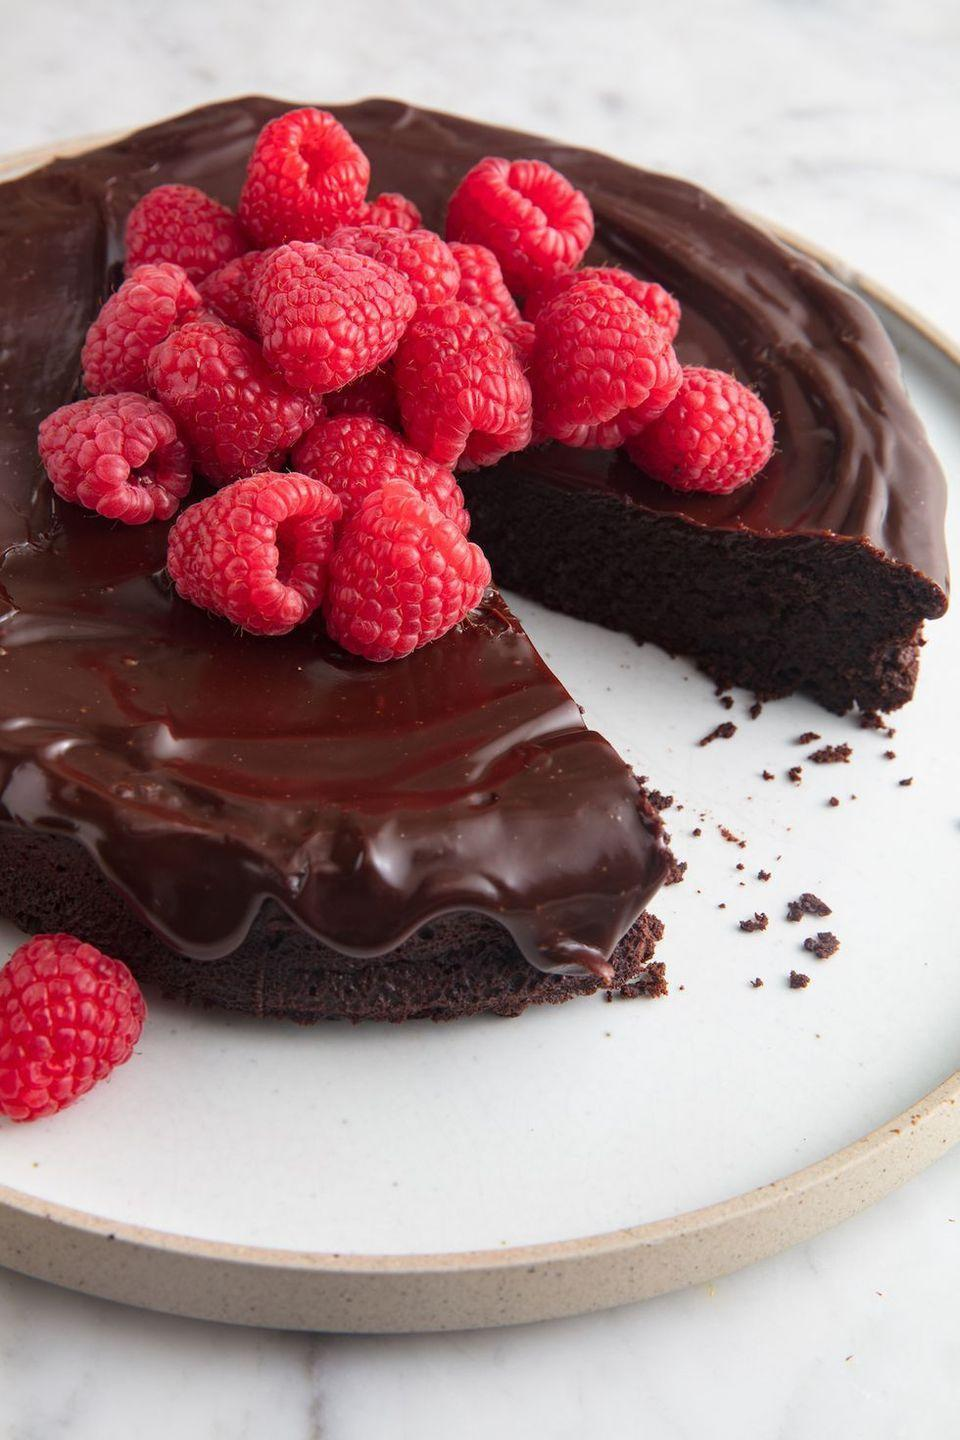 "<p>This cake is a showoff. </p><p>Get the recipe from <a href=""https://www.delish.com/cooking/recipe-ideas/a19473626/best-flourless-chocolate-cake-recipe/"" rel=""nofollow noopener"" target=""_blank"" data-ylk=""slk:Delish"" class=""link rapid-noclick-resp"">Delish</a>. </p>"